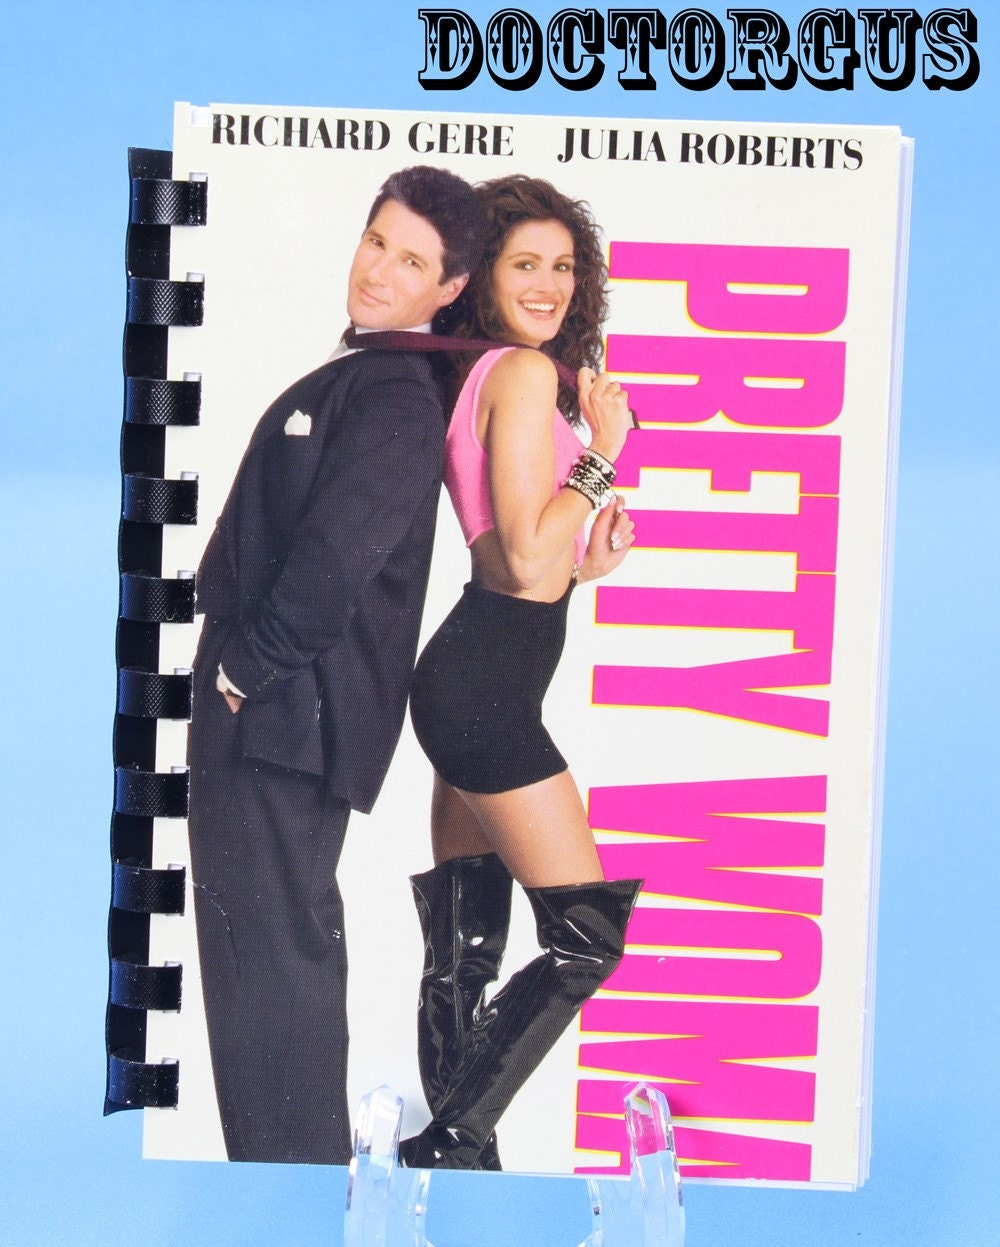 PRETTY WOMAN -- Recycled VHS Cover Notebook -- Upcycled Video Cassette Sleeve Sketchbook -- Reclaimed Tape Jackets by Doctorgus